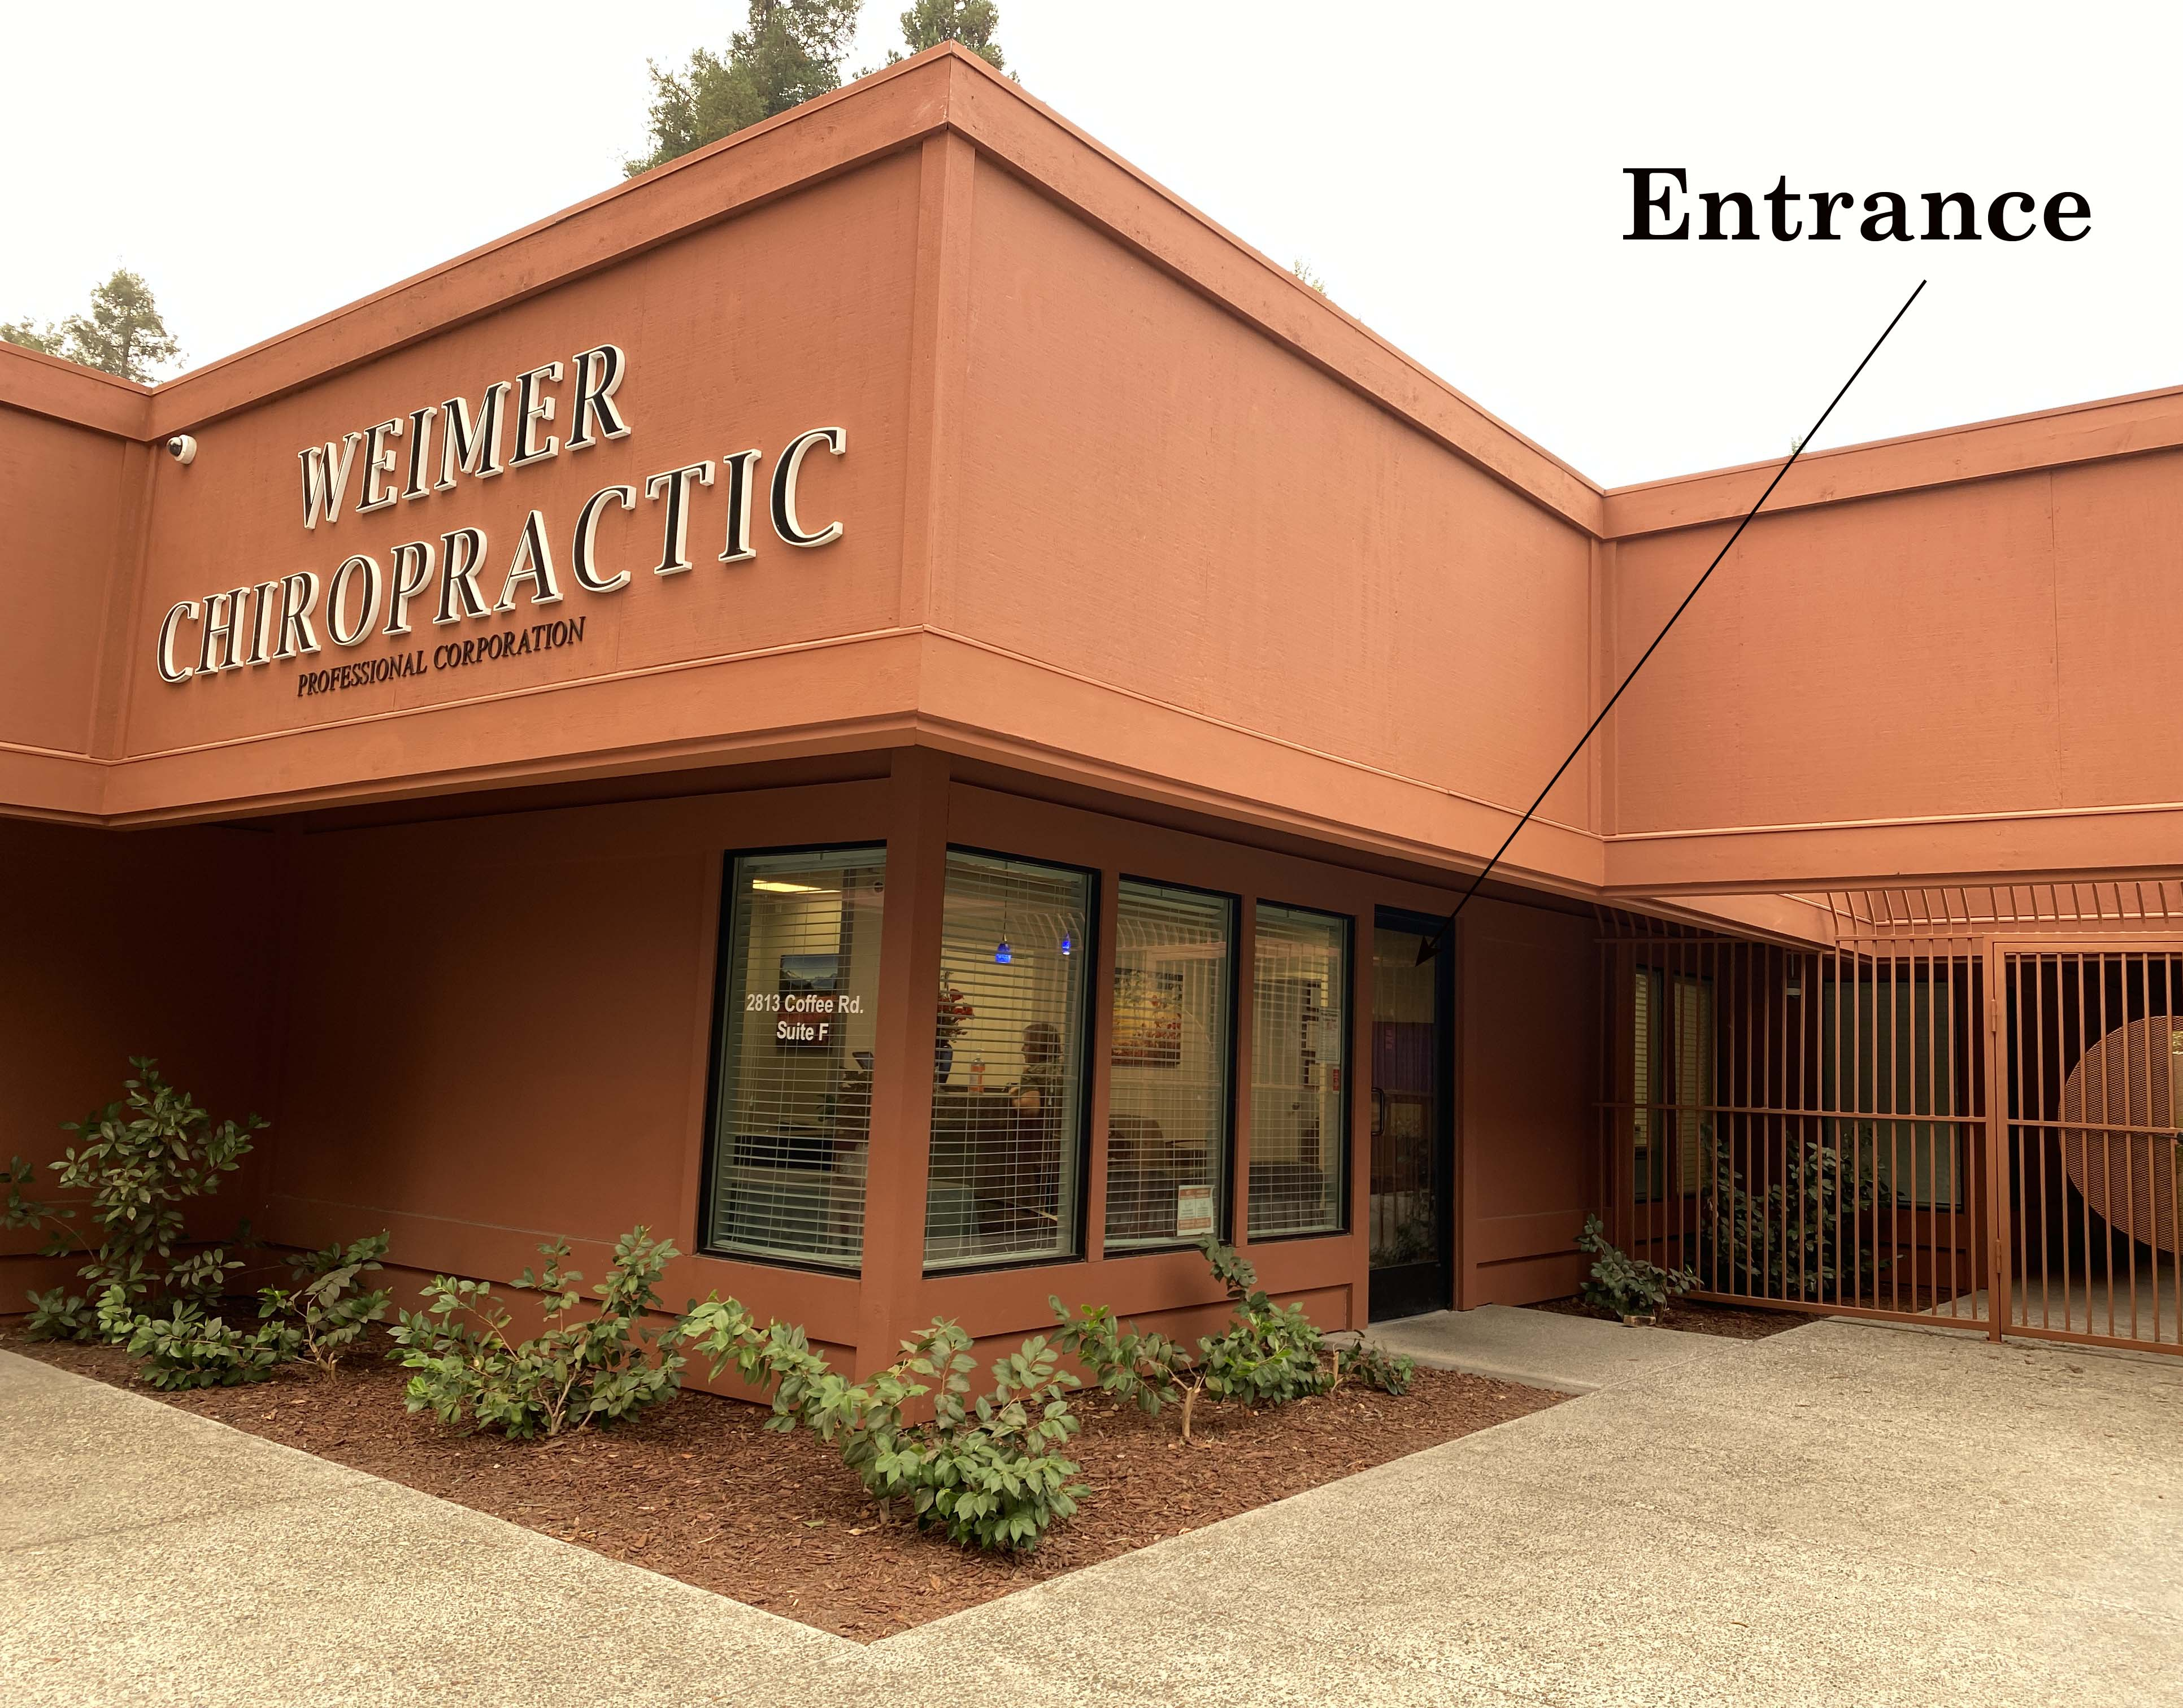 The stress free entrance to Weimer Chiropractic